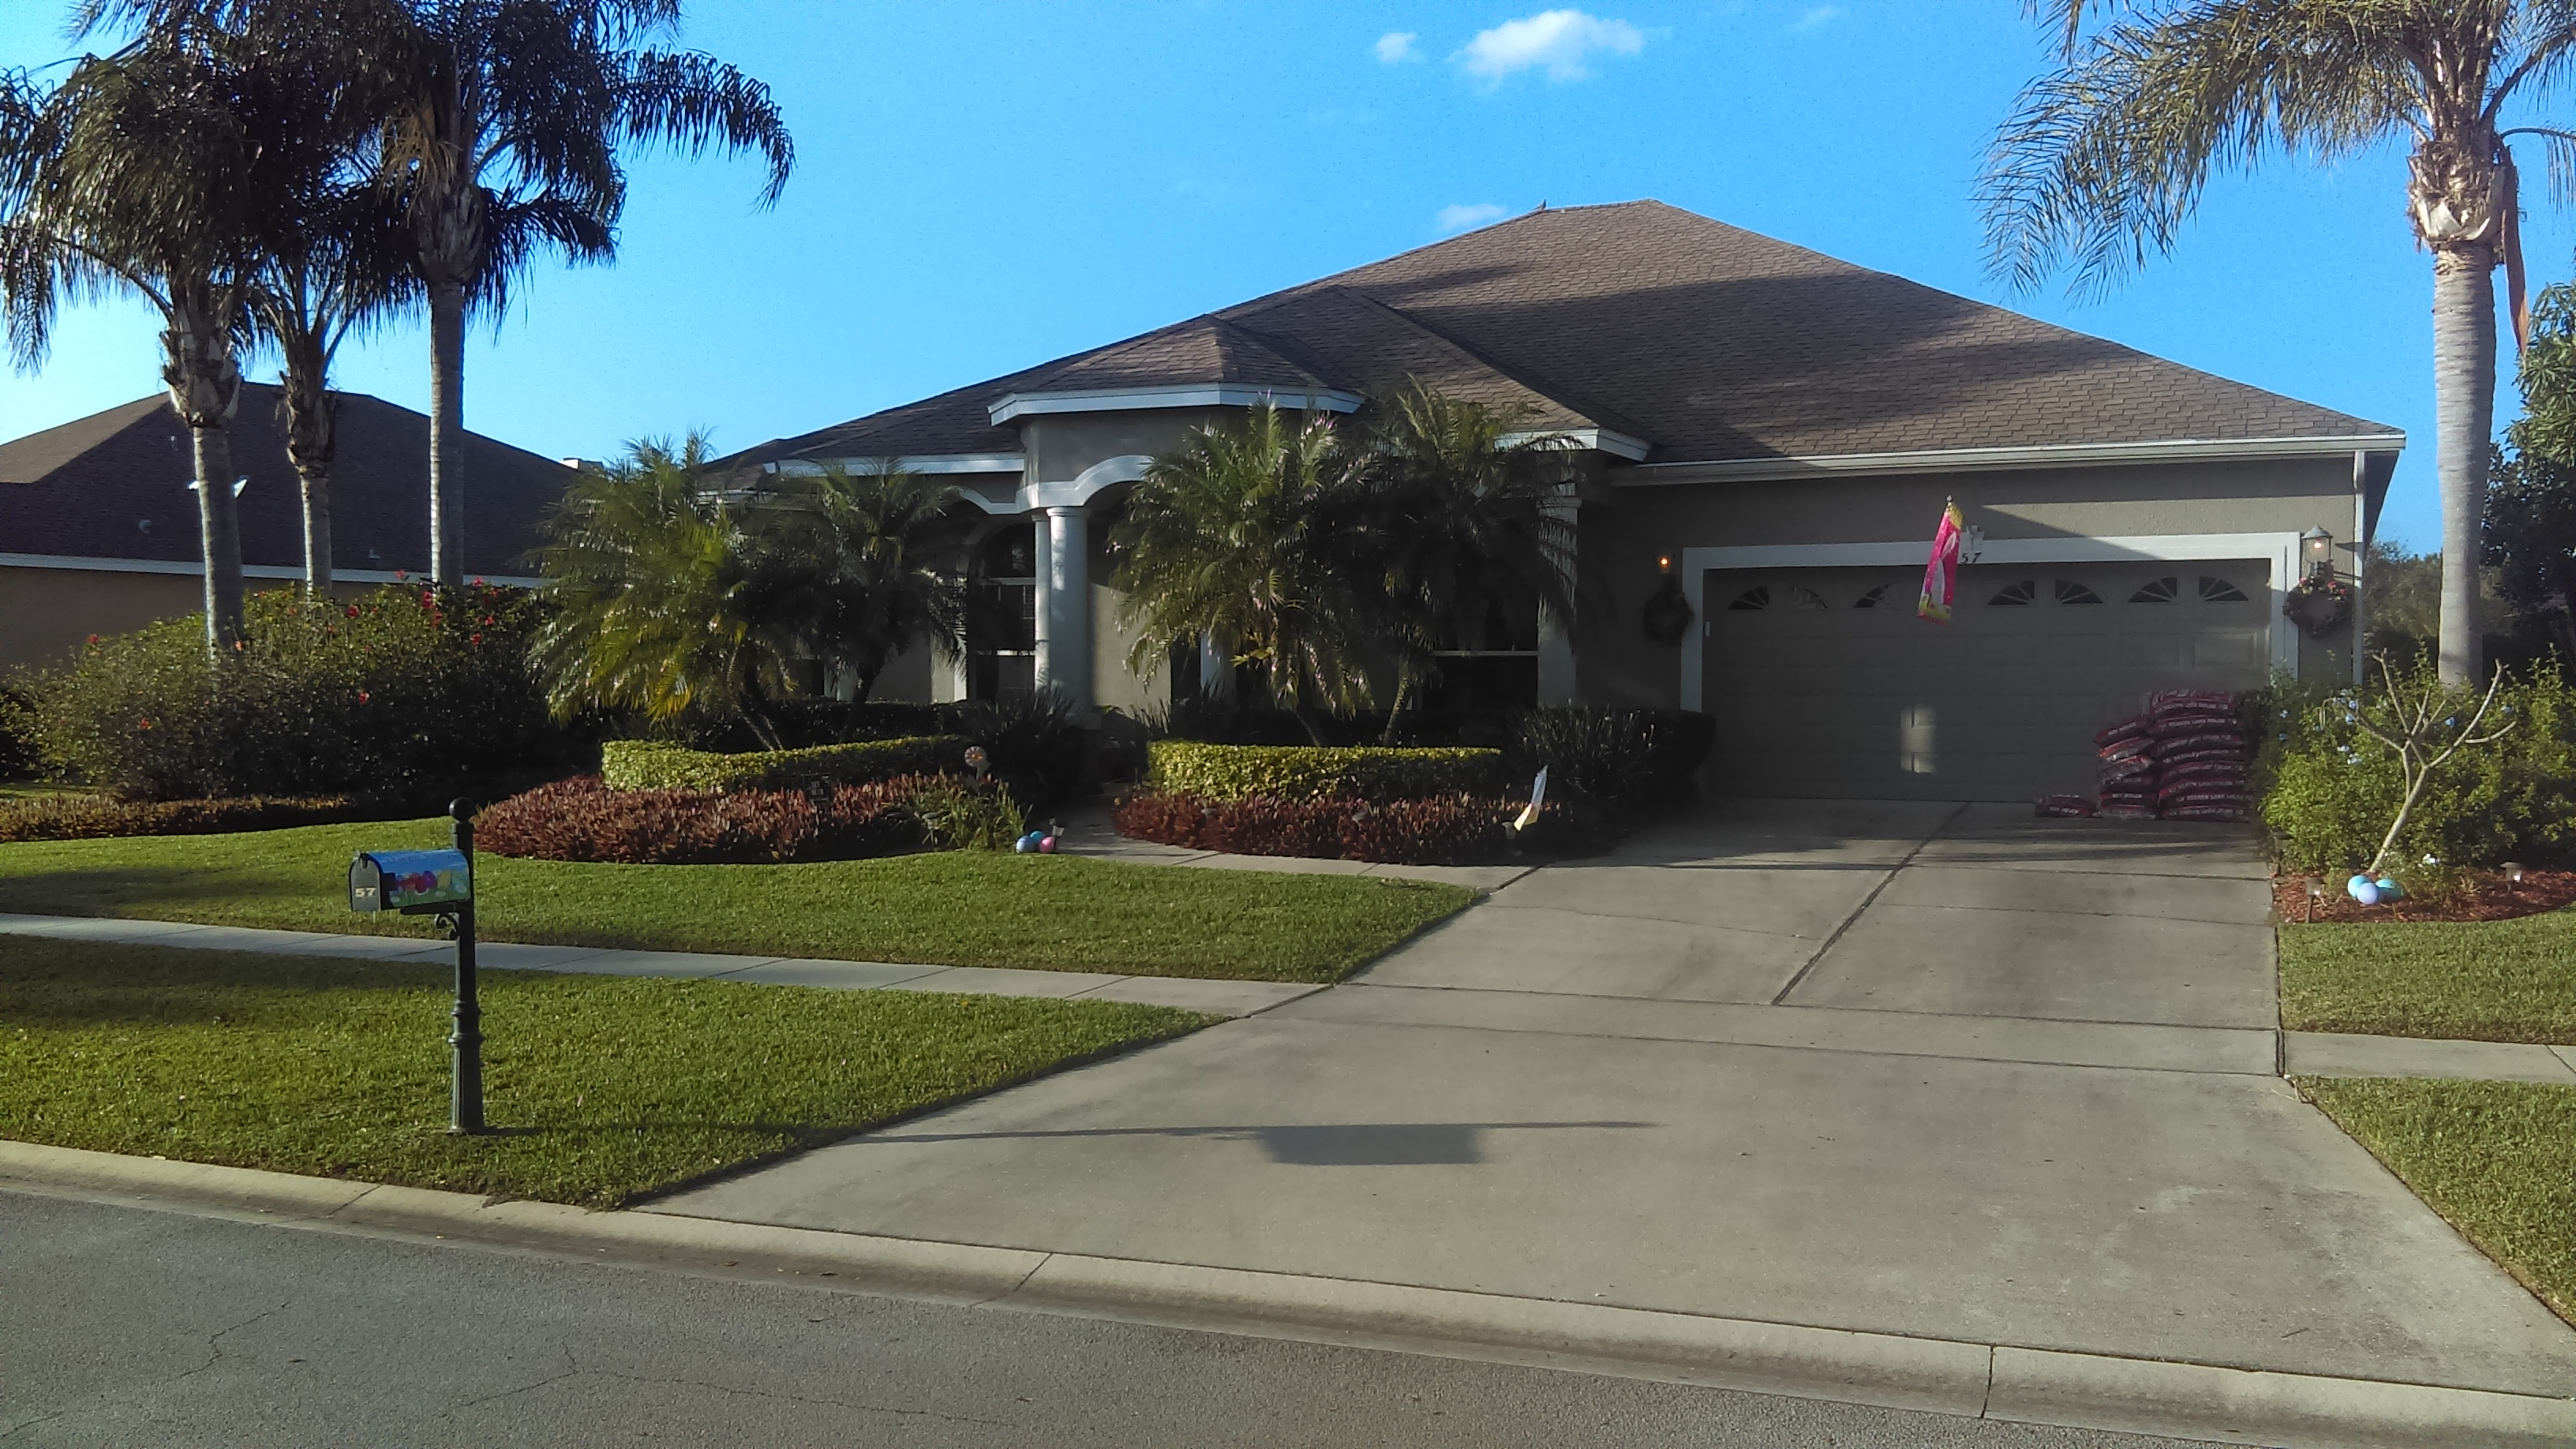 Yard mowing company in Orlando, FL, 32860